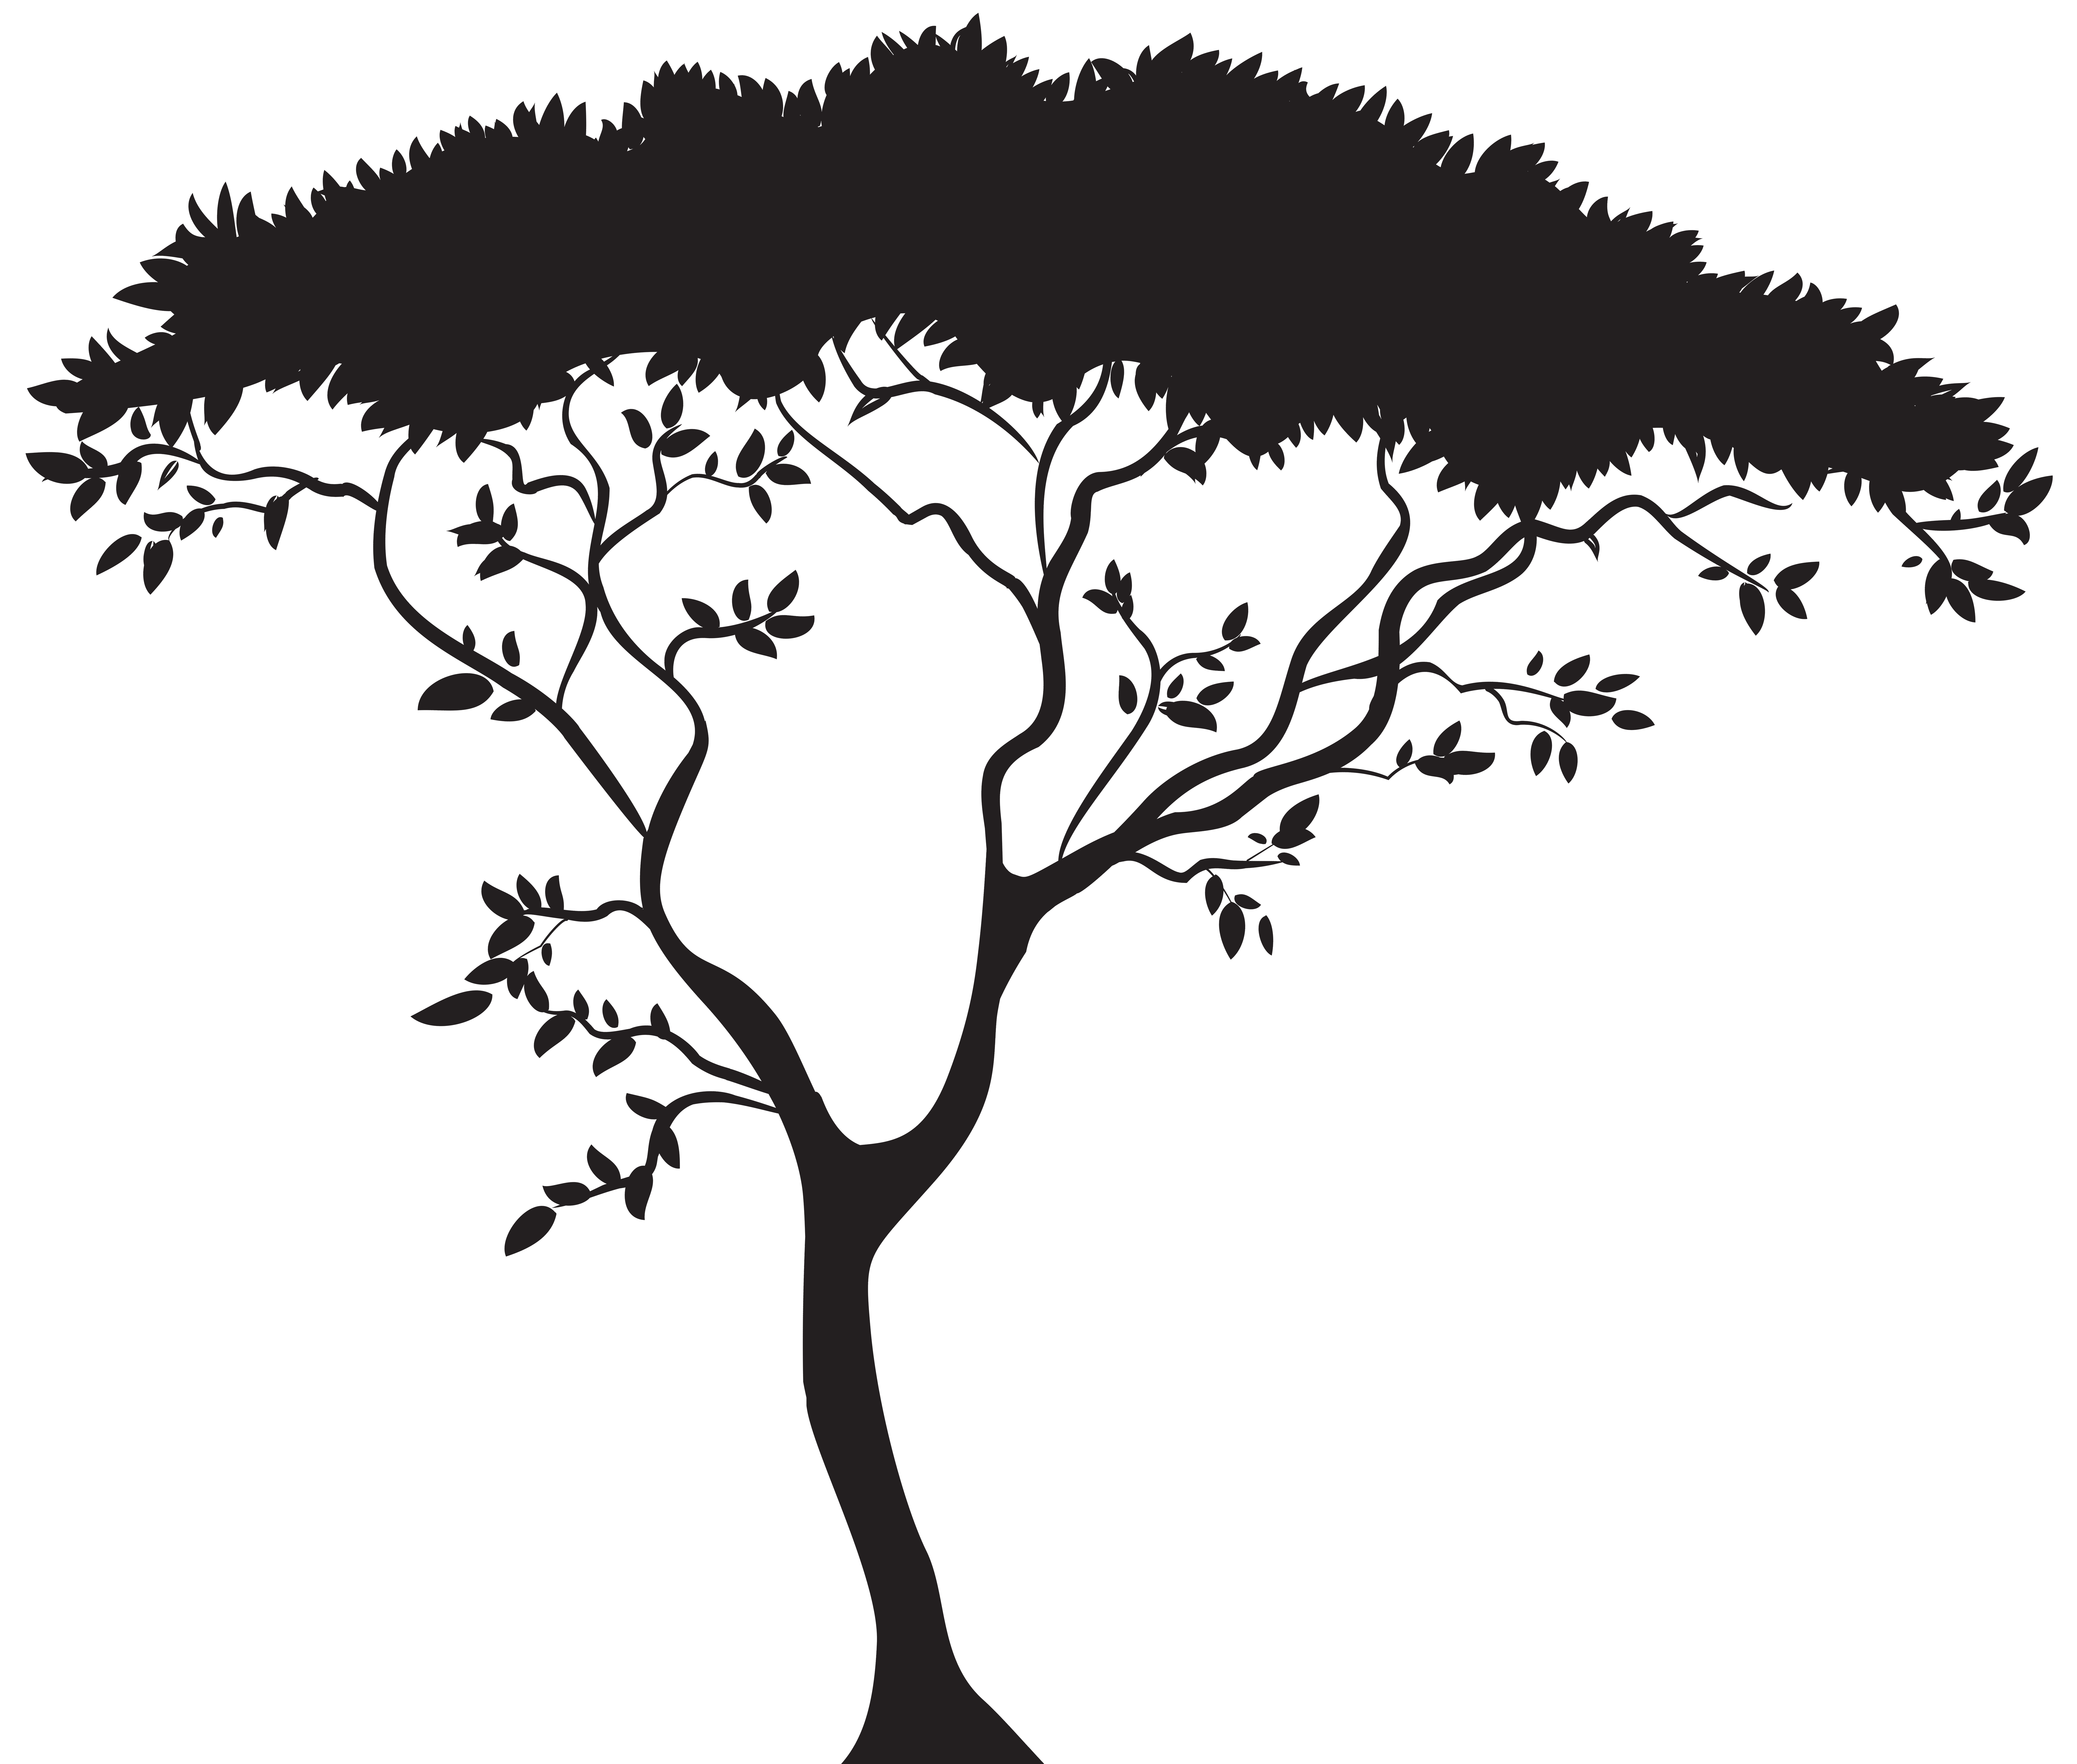 african trees drawing at free for personal use african trees drawing of your. Black Bedroom Furniture Sets. Home Design Ideas